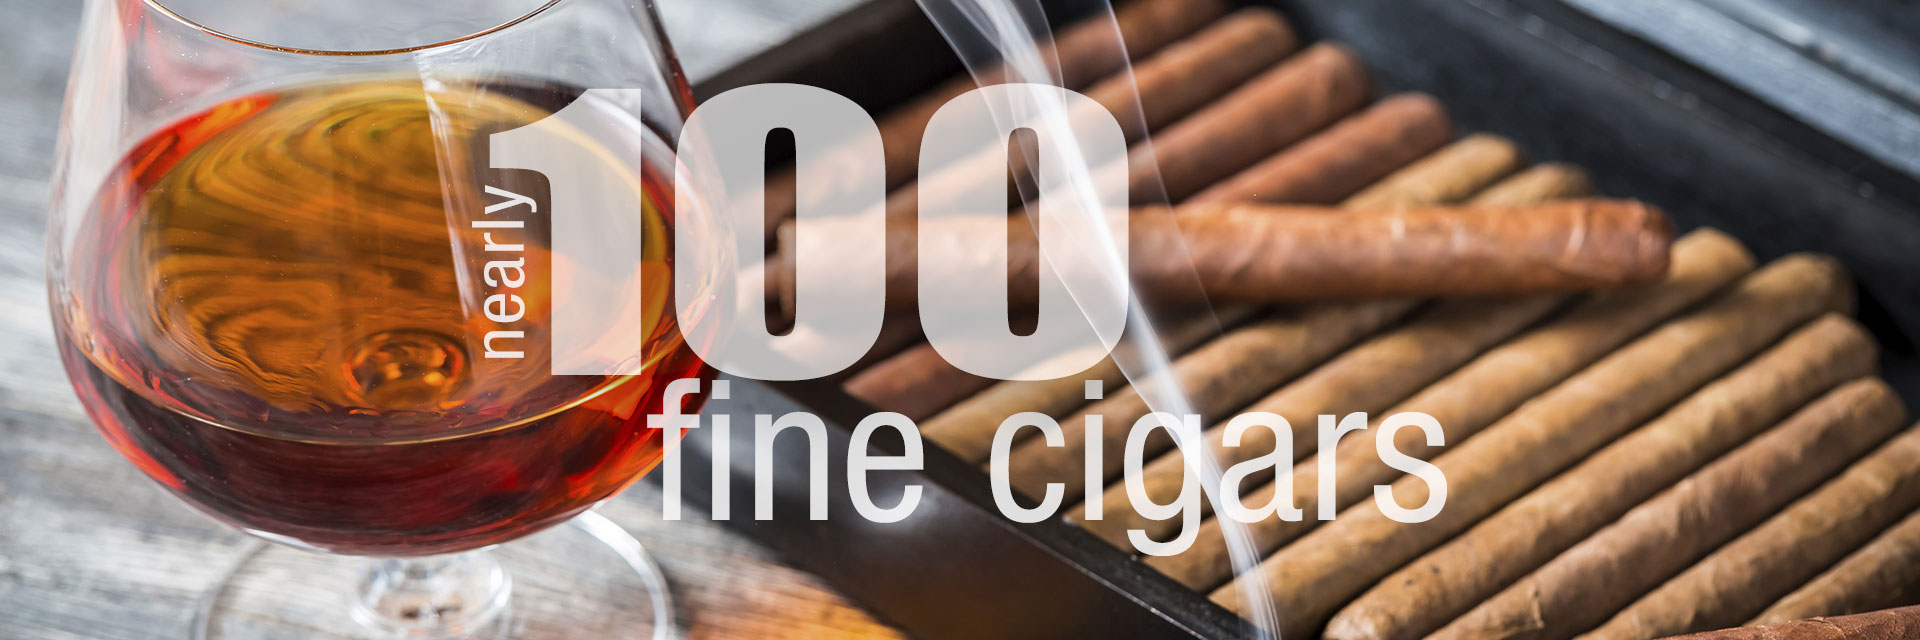 Nearly 100 Fine Cigars